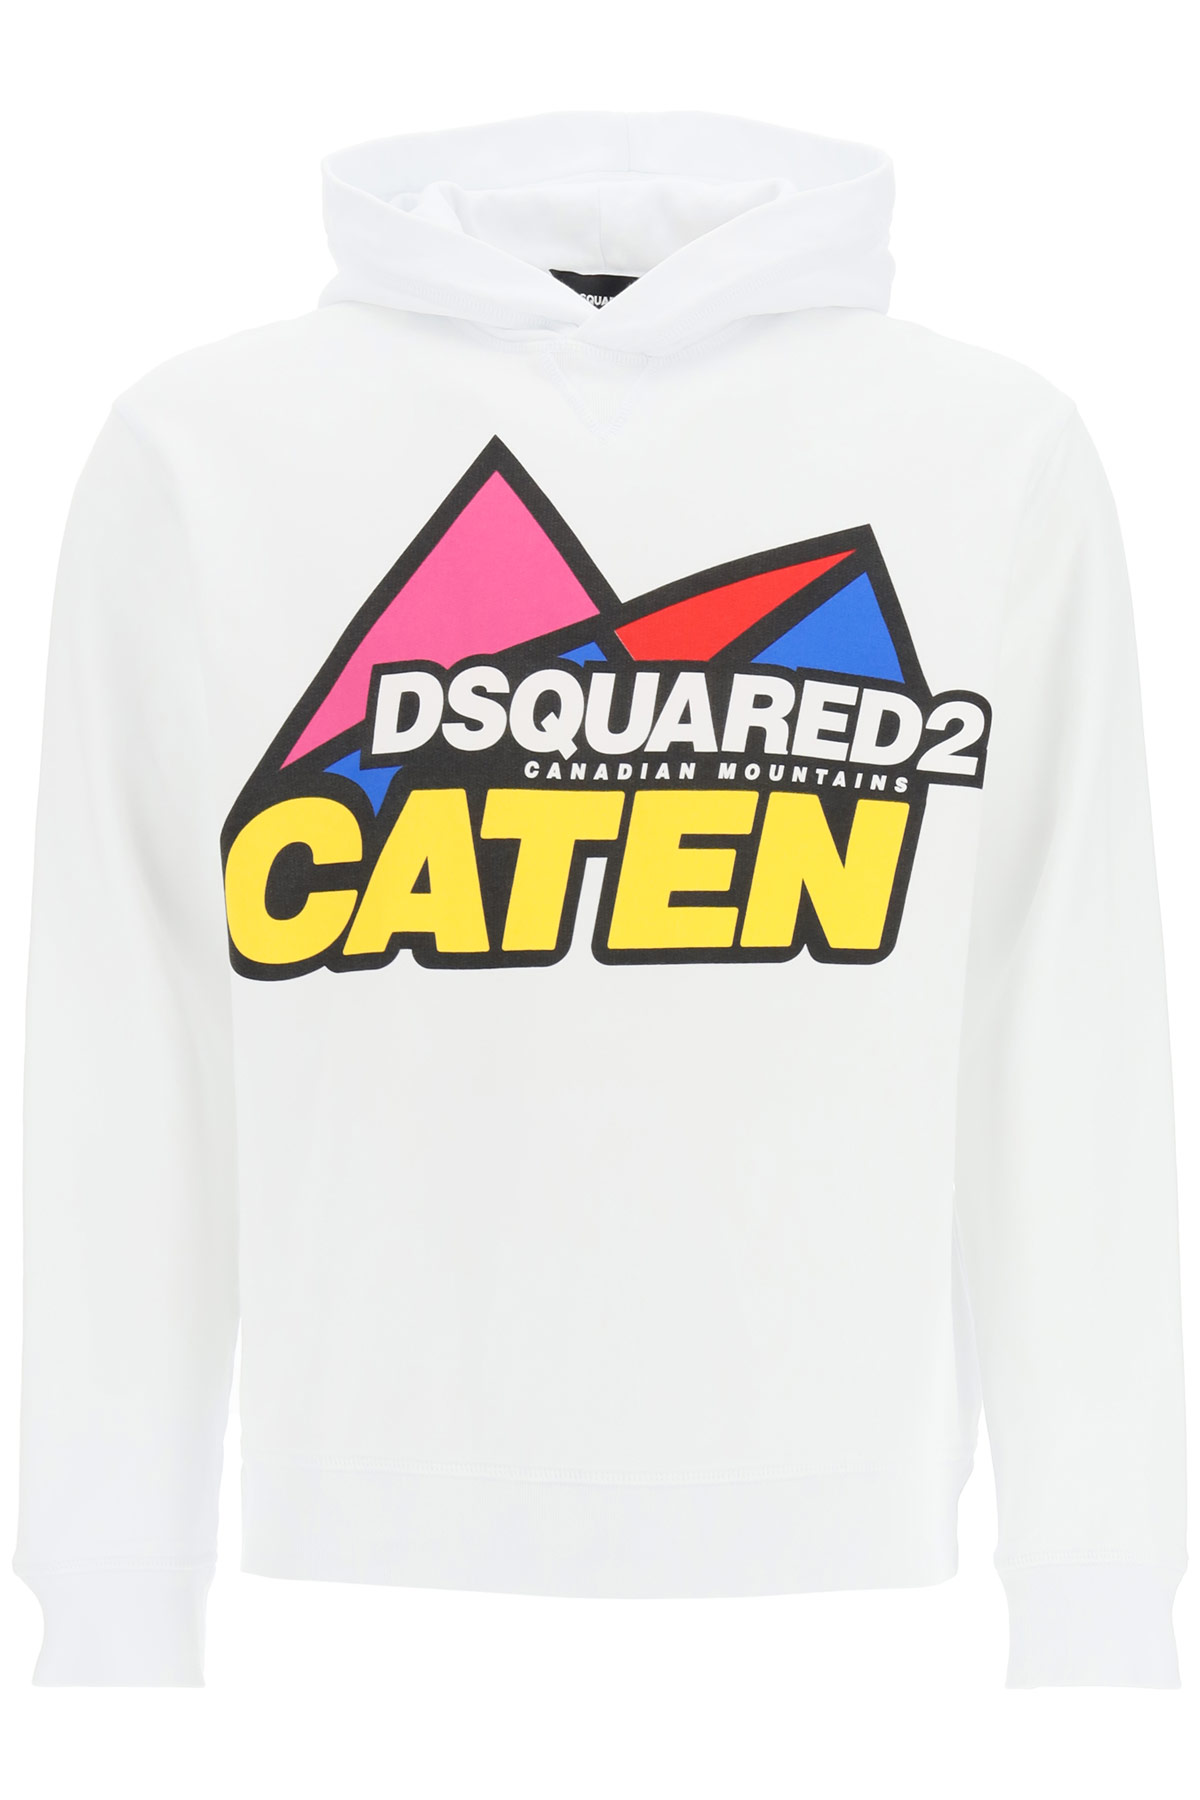 DSQUARED2 CANADIAN MOUNTAINS HOODIE S White, Yellow, Red Cotton